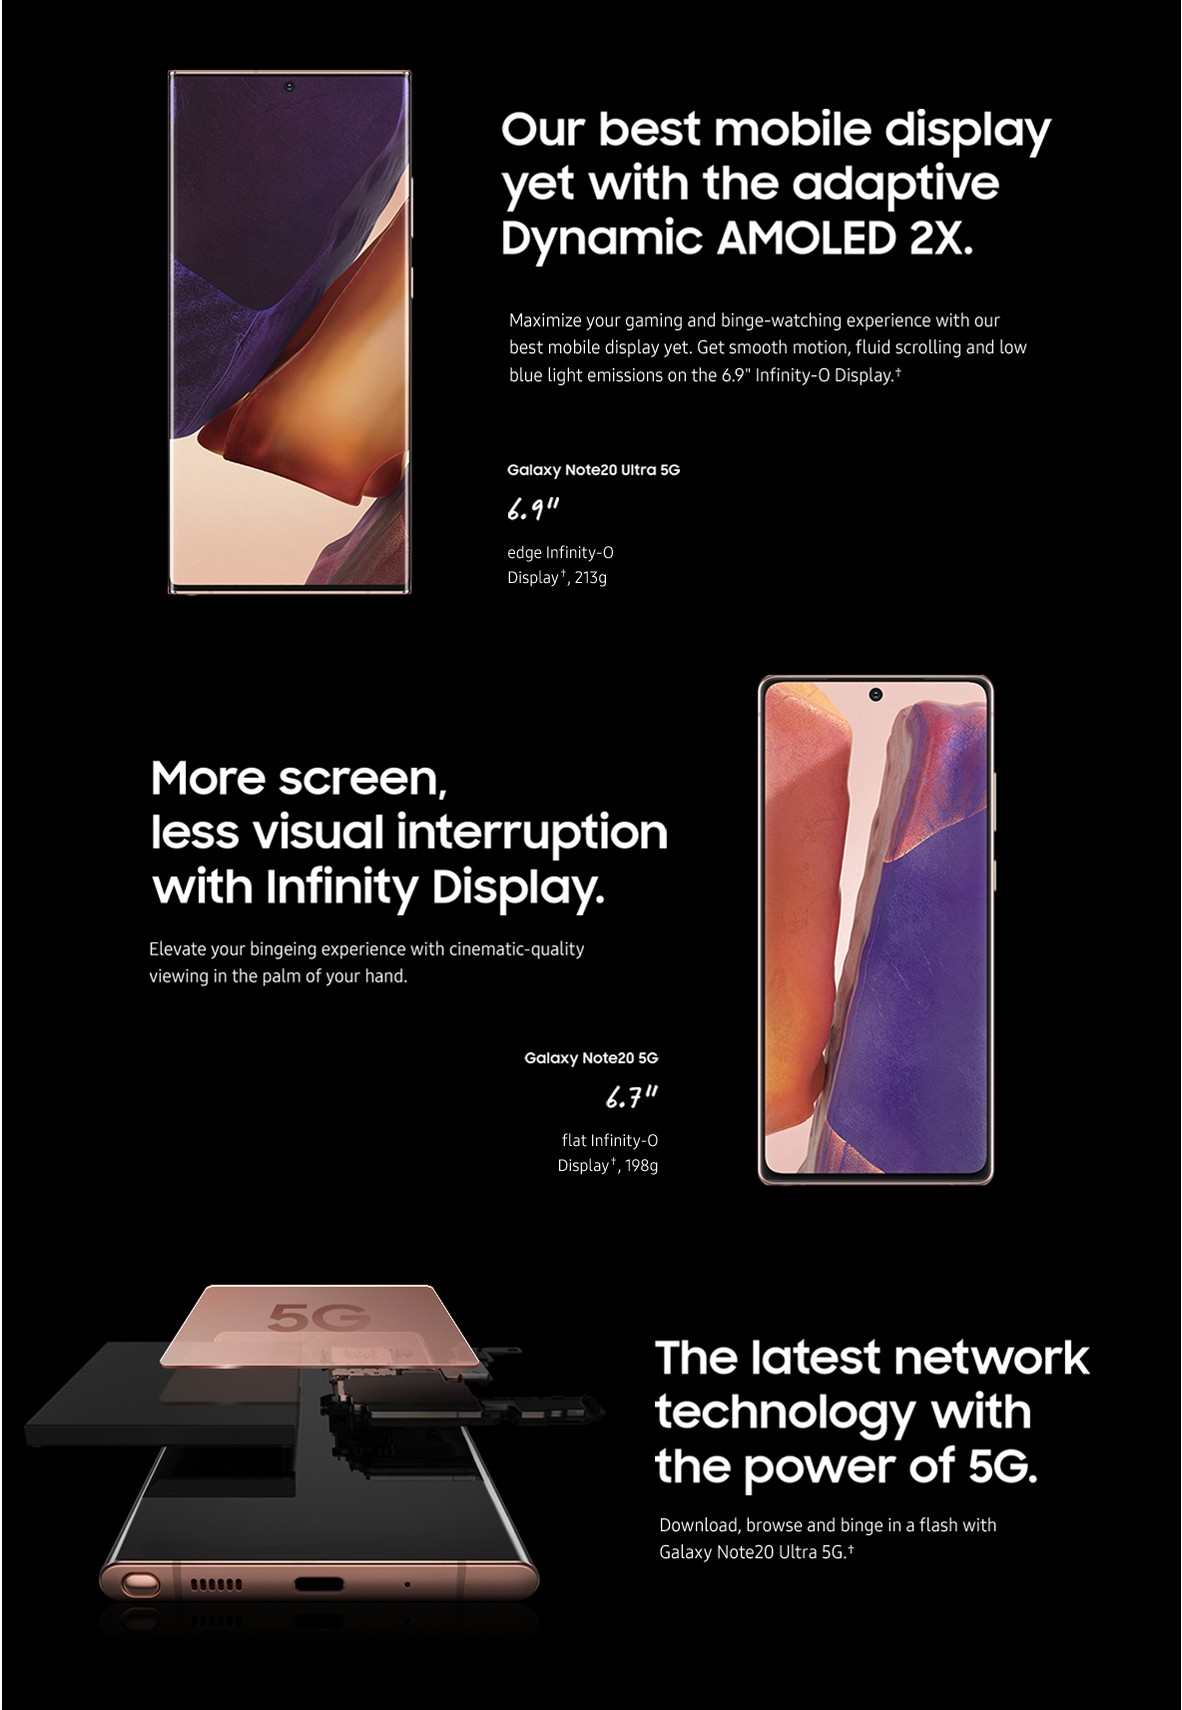 Our best mobile display.  More screen, less visual interruption.  The latest network technology with the power of 5G.